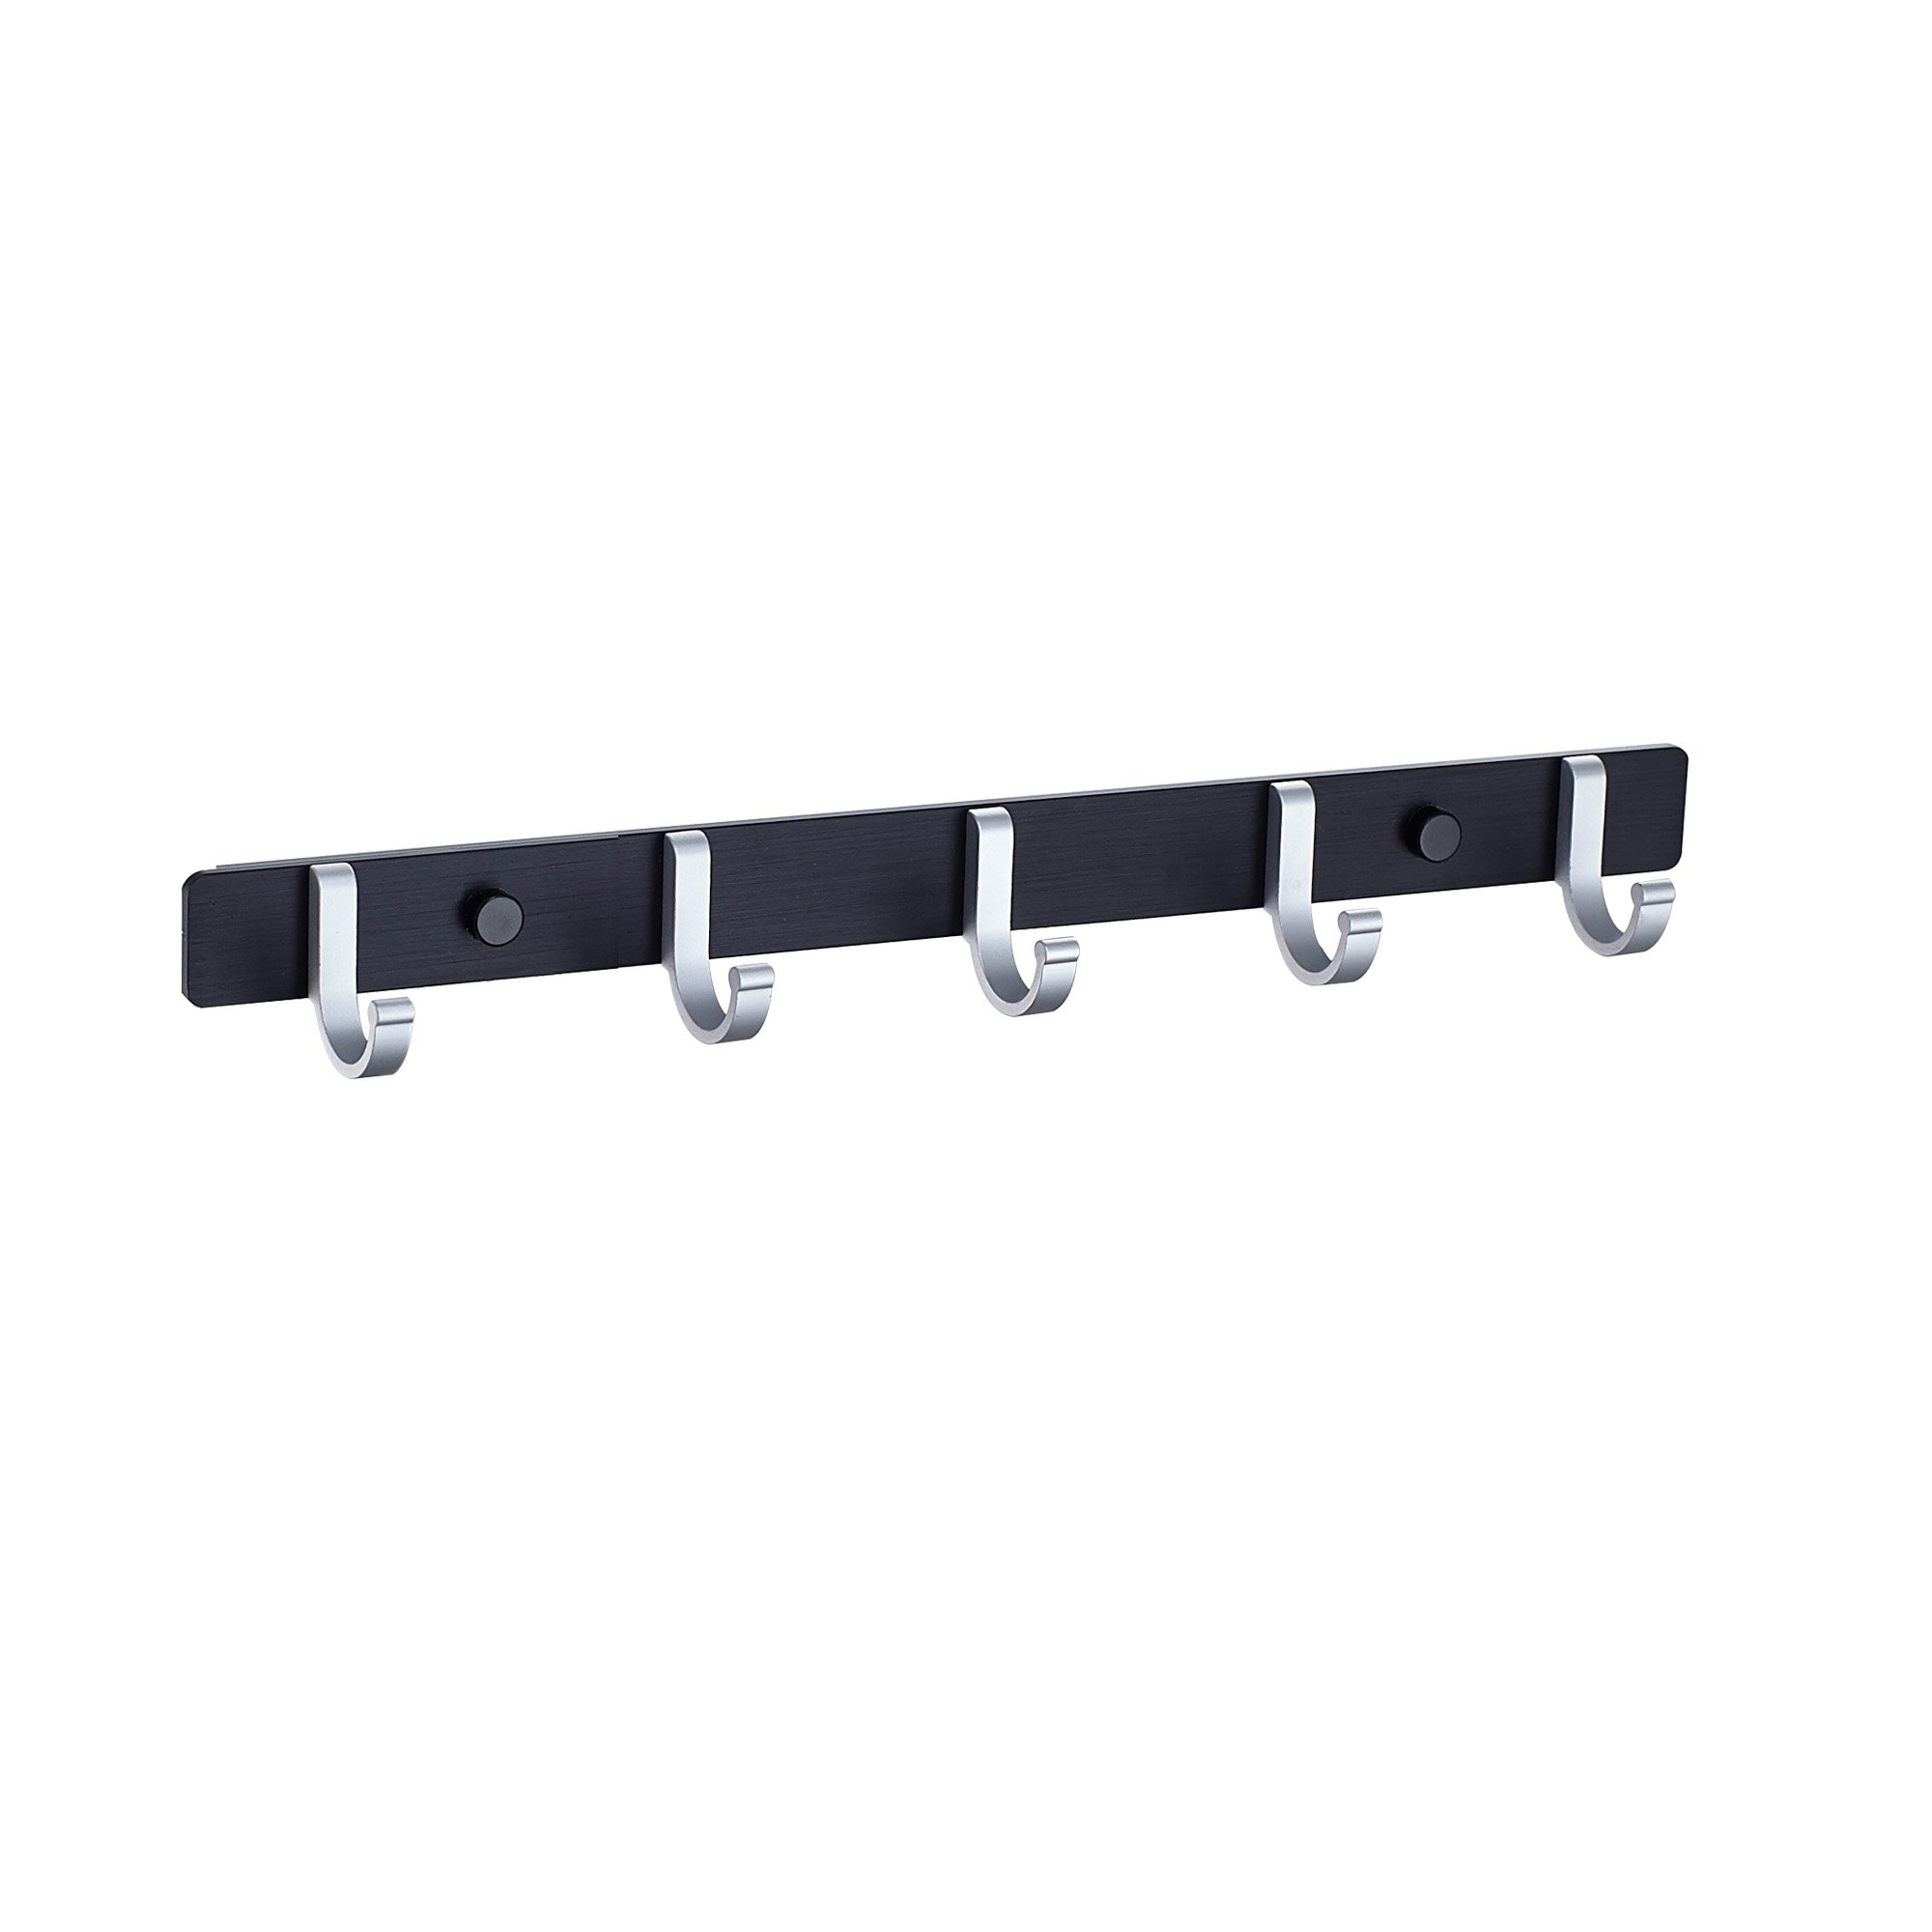 HOMESHOW Bathroom Towel Rail/Rack With5 Hooks Wall Mount Aluminum Alloy, Black and Silver G08 0091